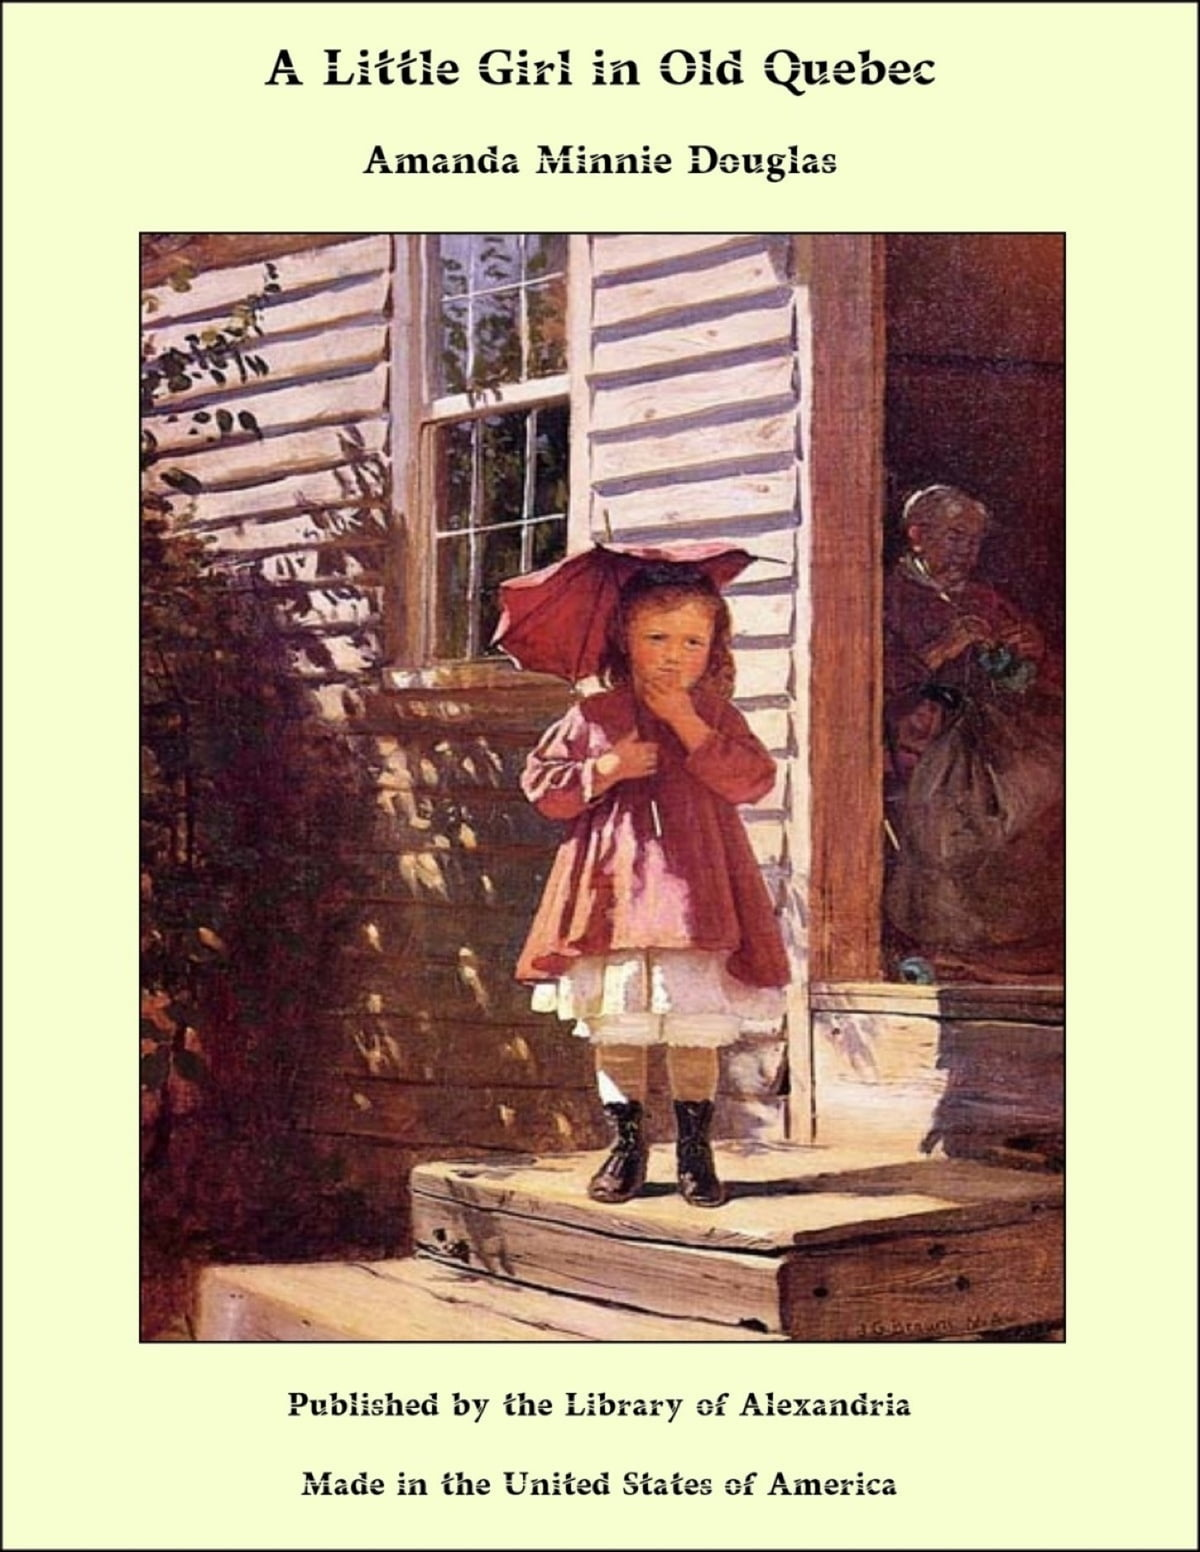 A little girl in old quebec ebook by amanda minnie douglas a little girl in old quebec ebook by amanda minnie douglas 9781465603241 rakuten kobo fandeluxe Document